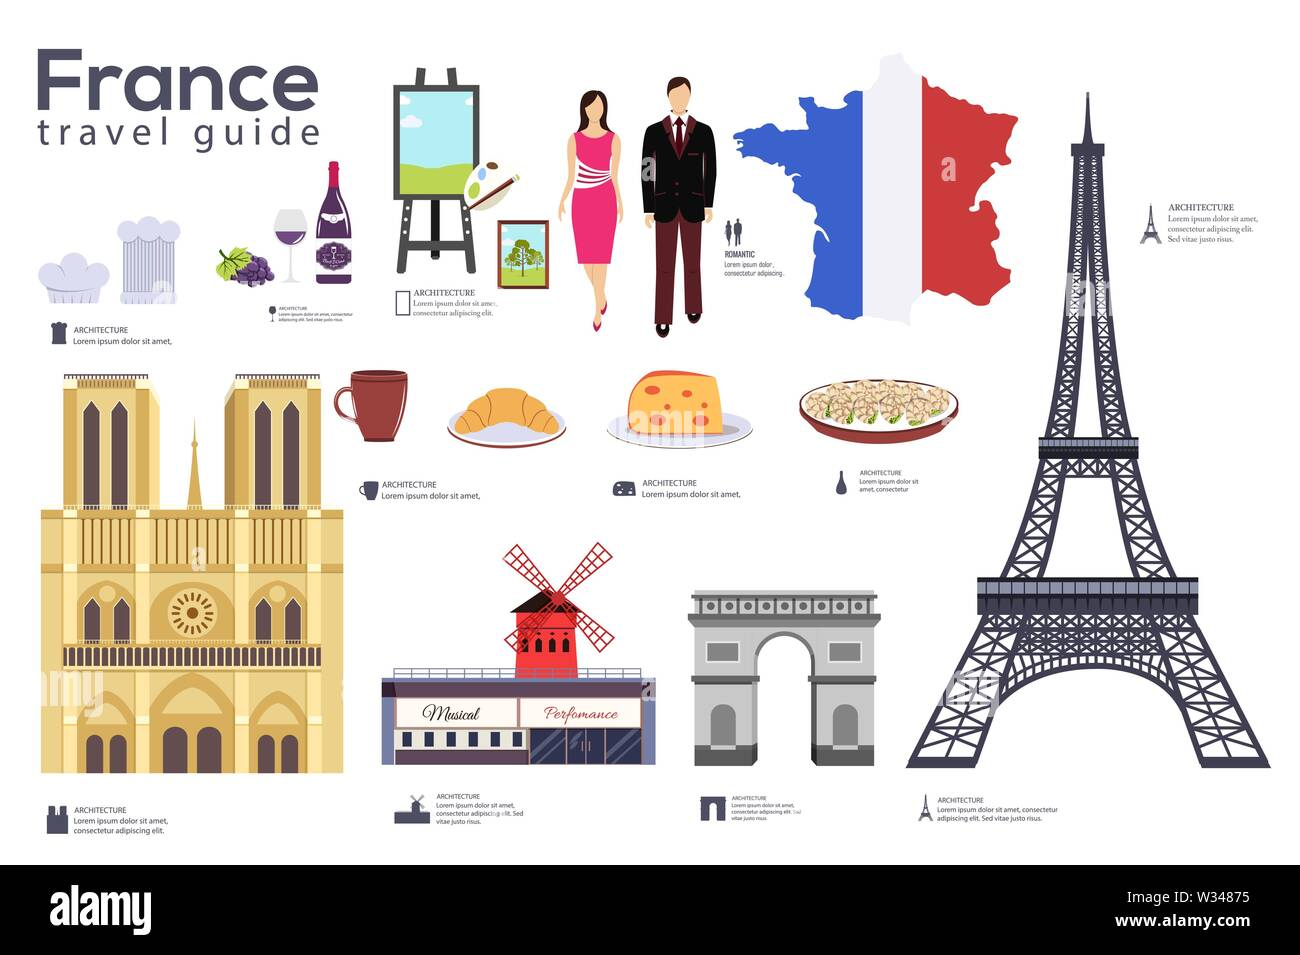 France travel guide template. Set of french landmarks, cuisine, traditions flat icons, pictograms on white. Sightseeing attractions and cultural symbo - Stock Image